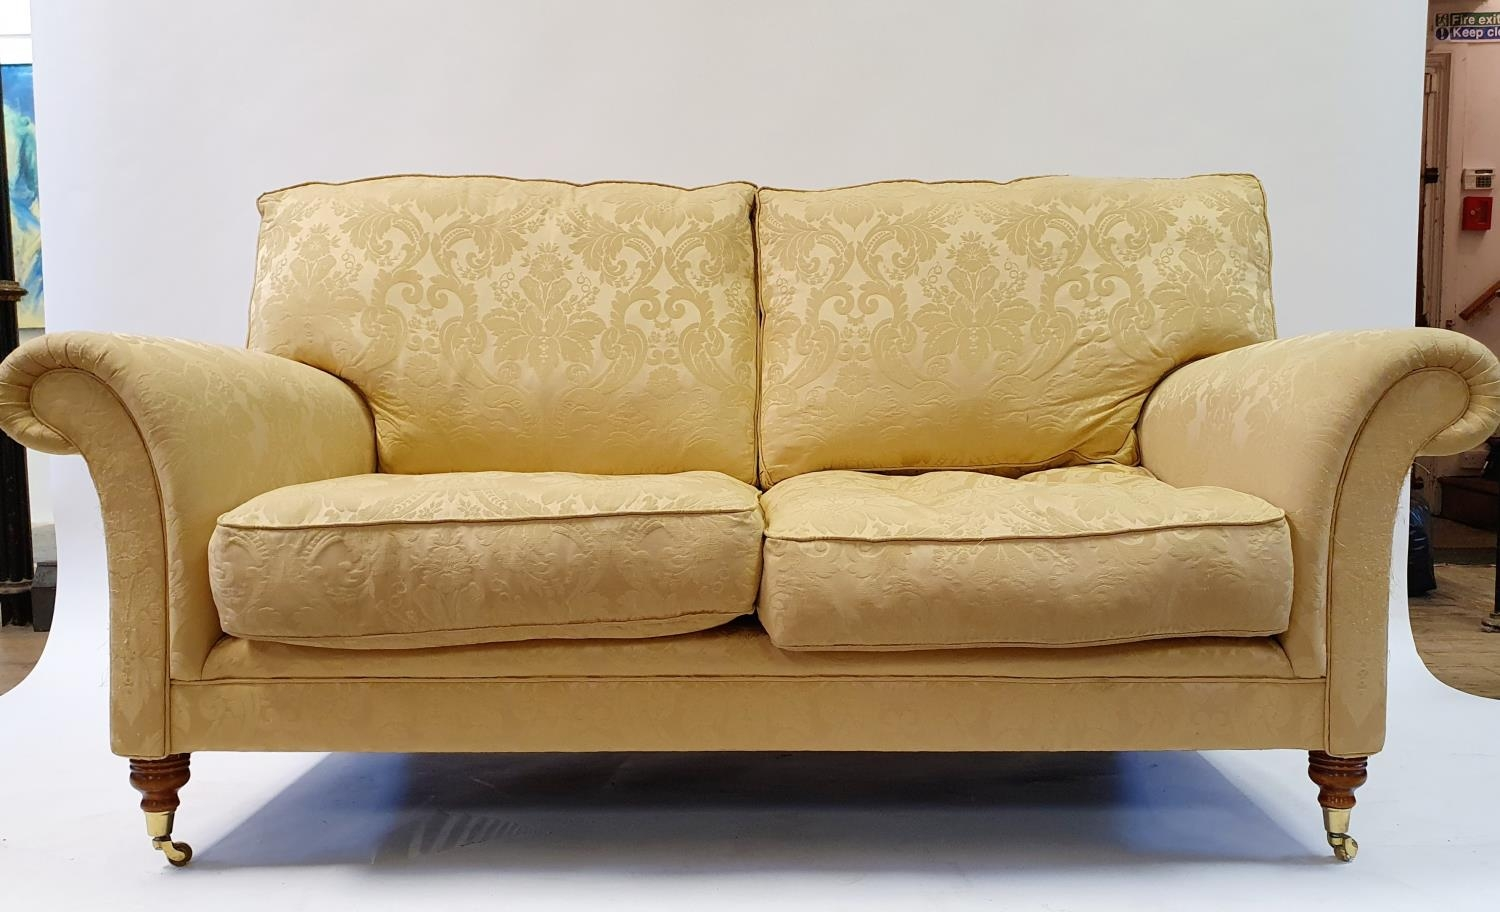 A Wesley Barrell Victorian style two seater settee, on turned front legs - Image 2 of 3